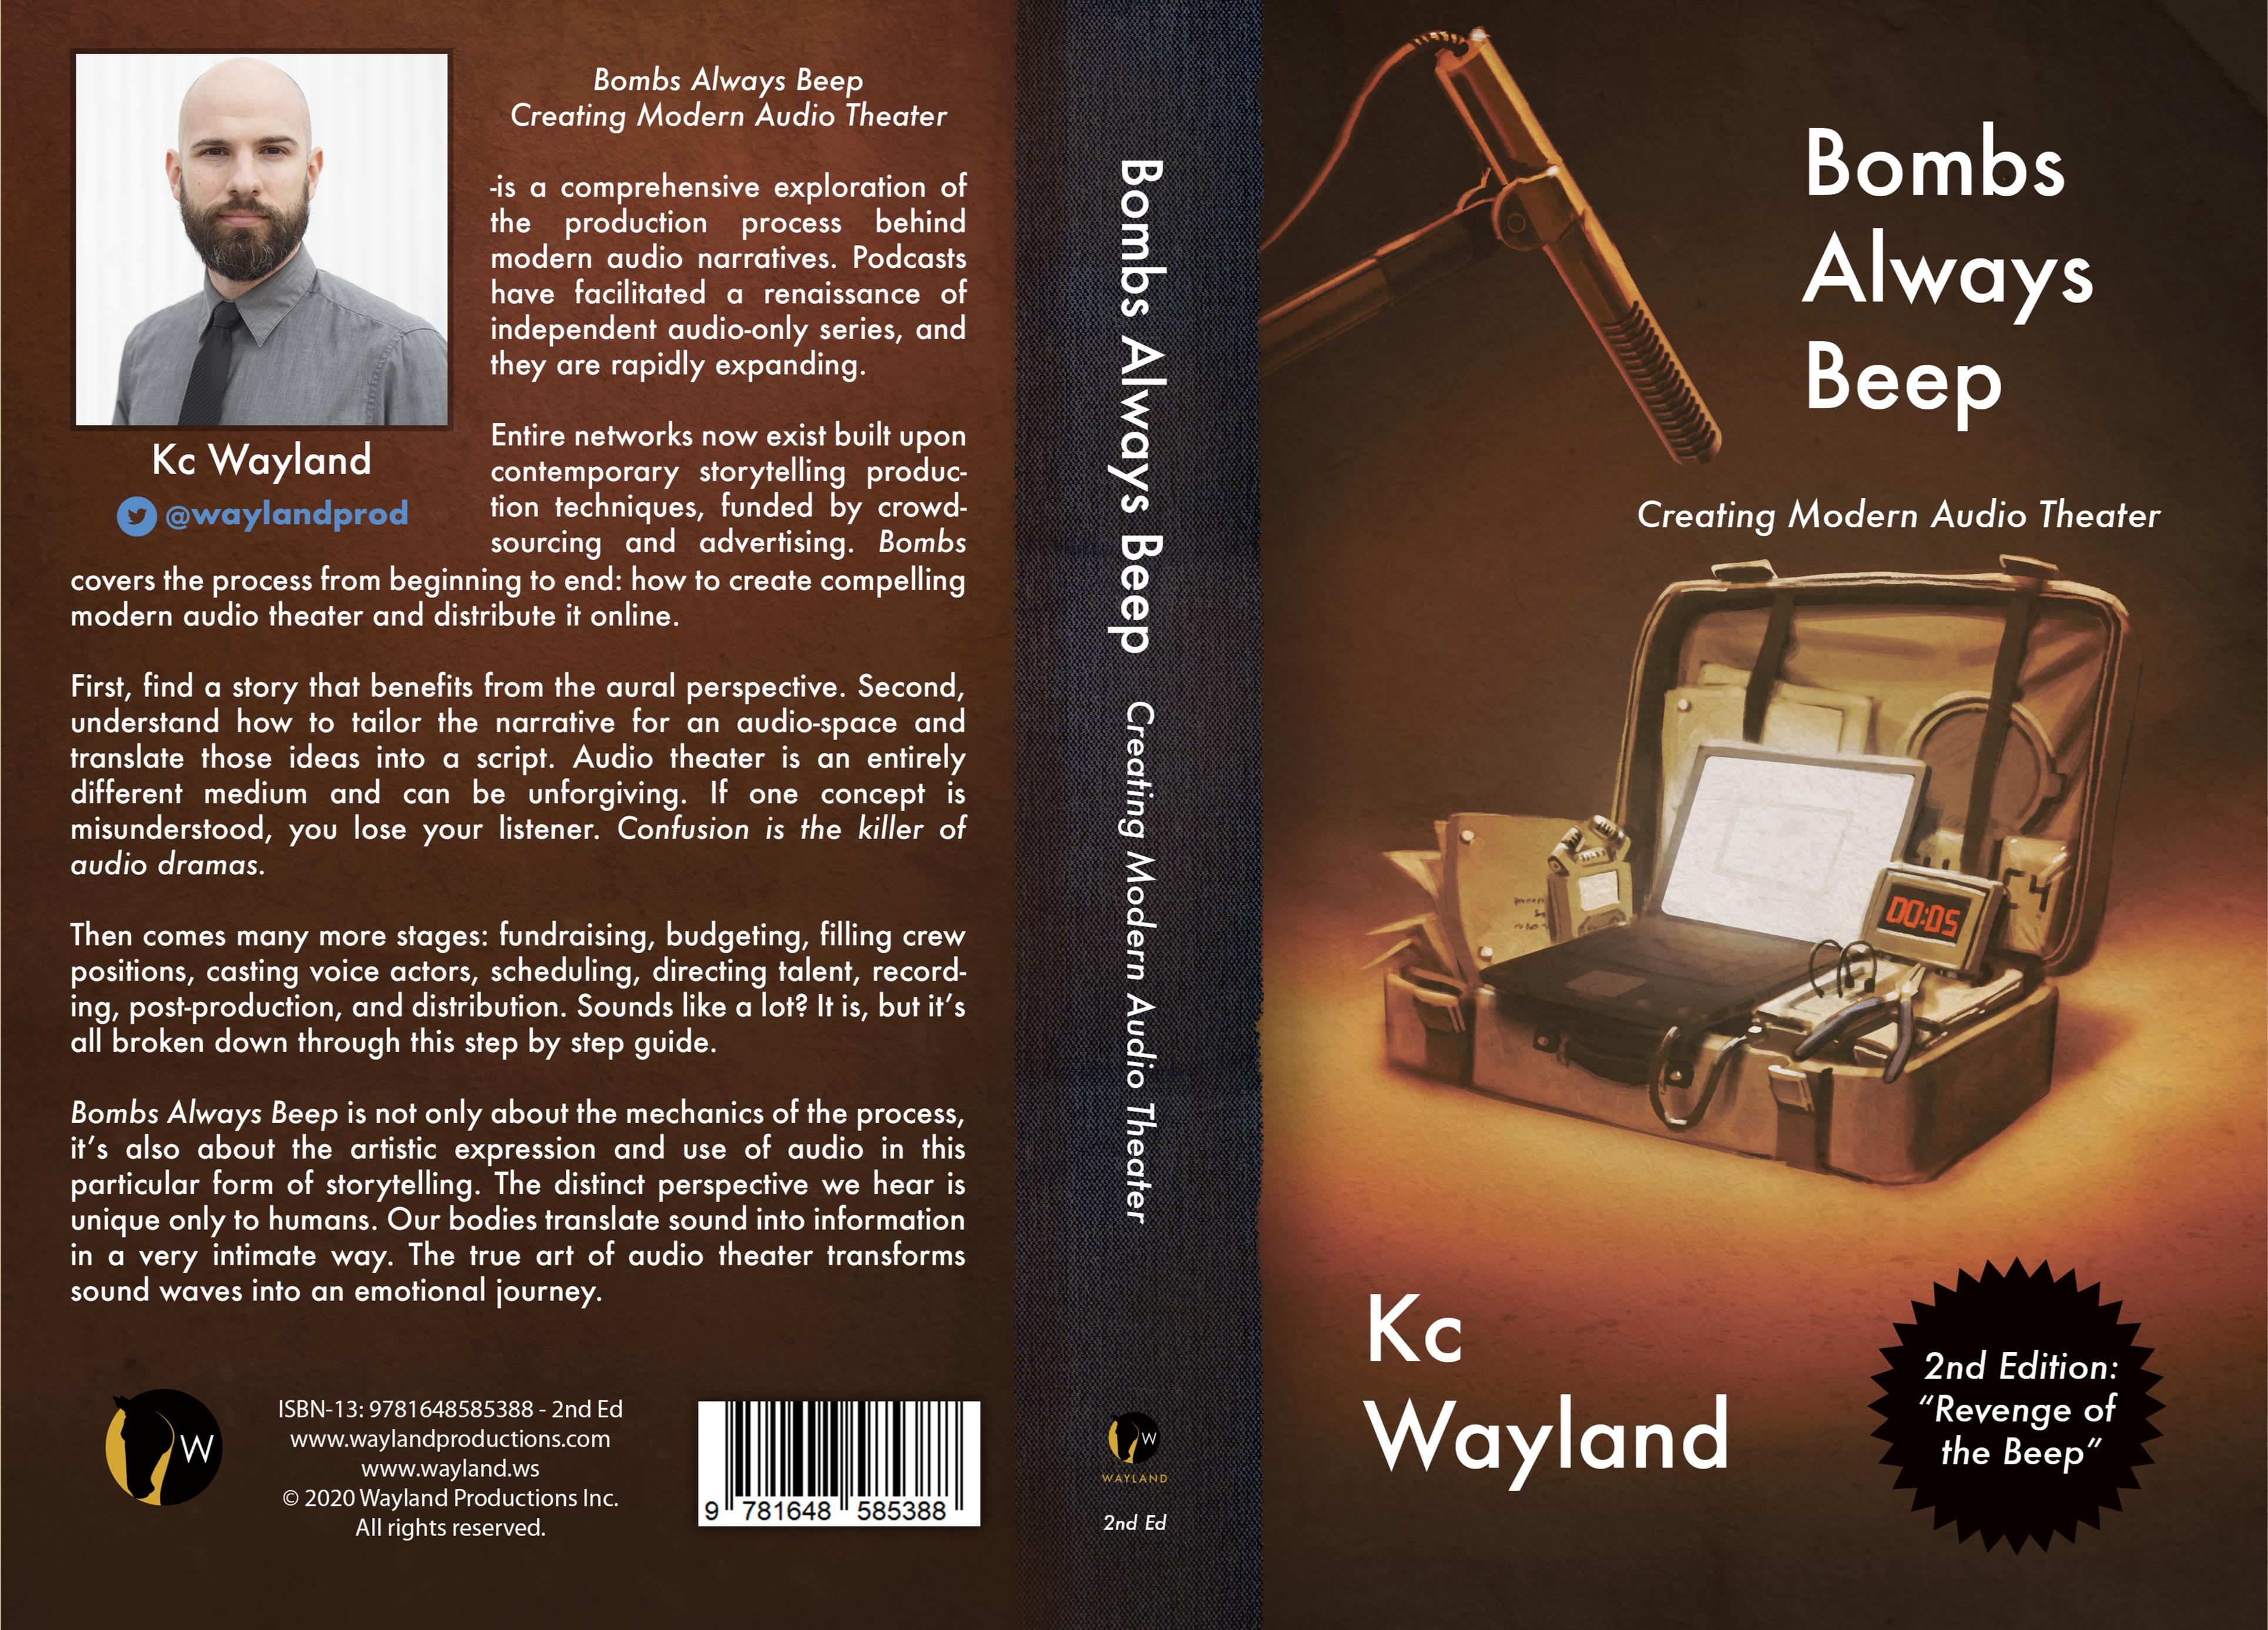 Bombs Always Beep - 2nd Edition - Creating Modern Audio Theater cover image